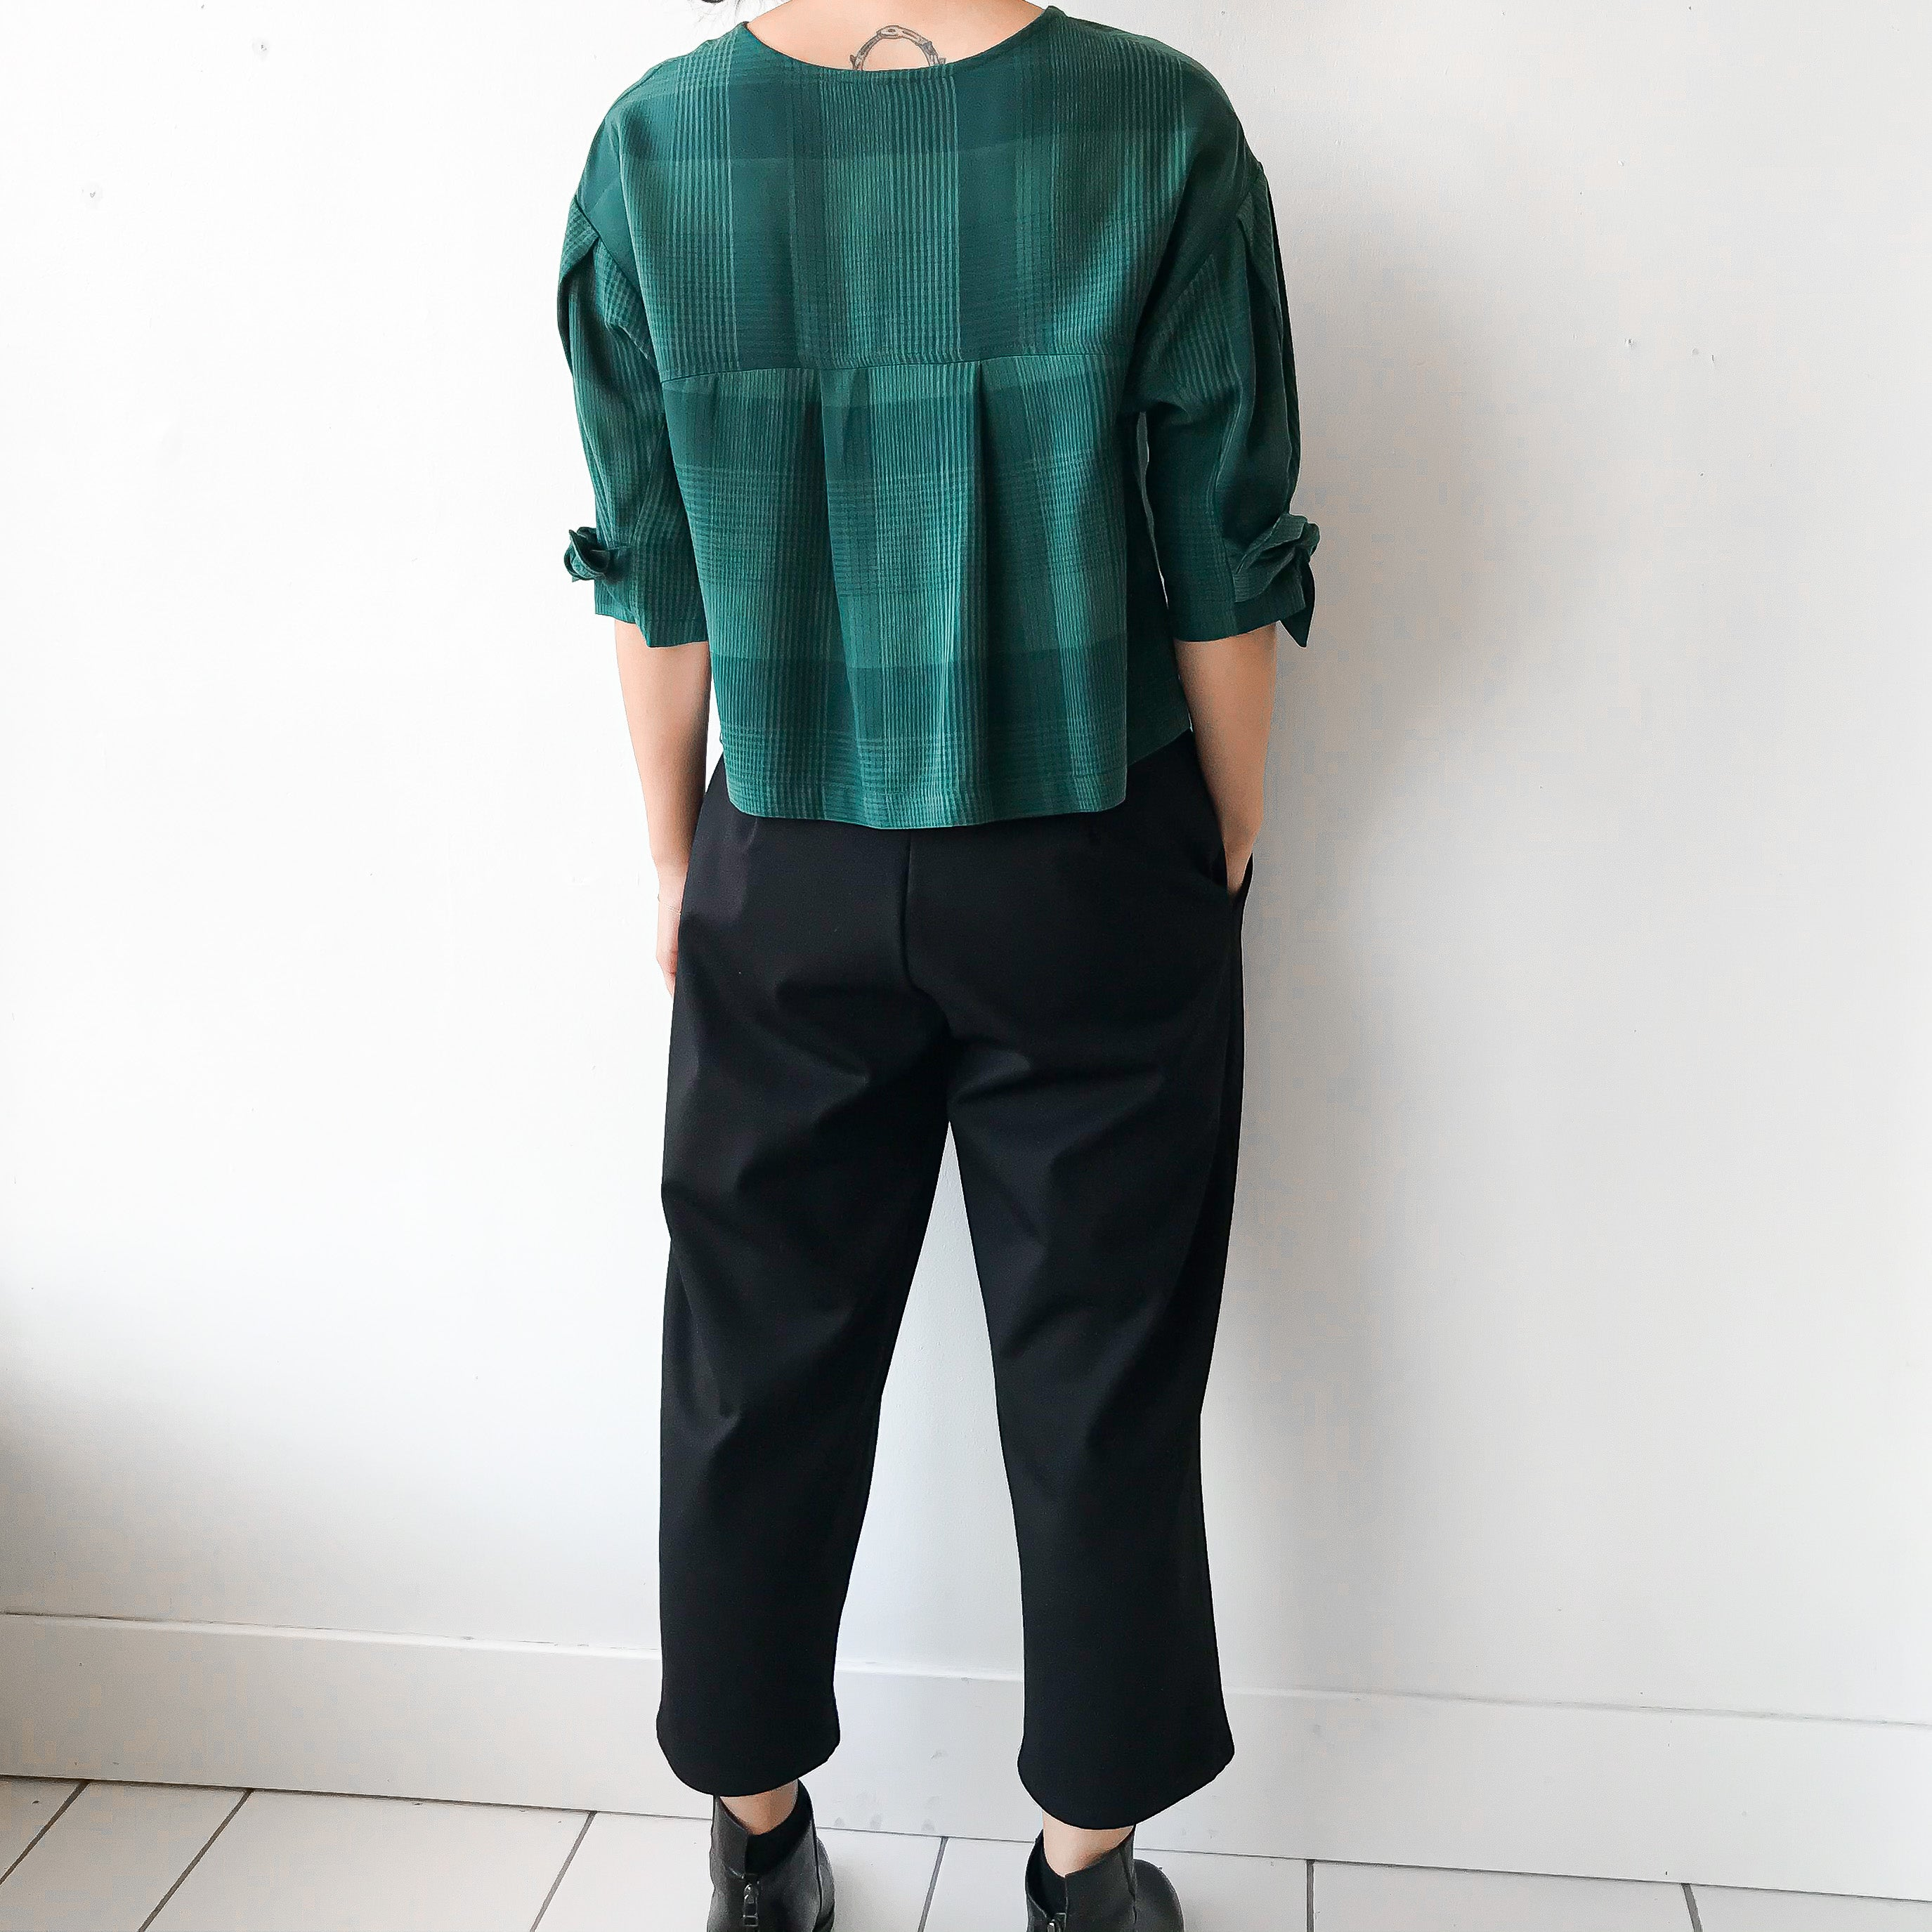 eve gravel |SUNRISE Tied Sleeve Top - Emerald Plaid